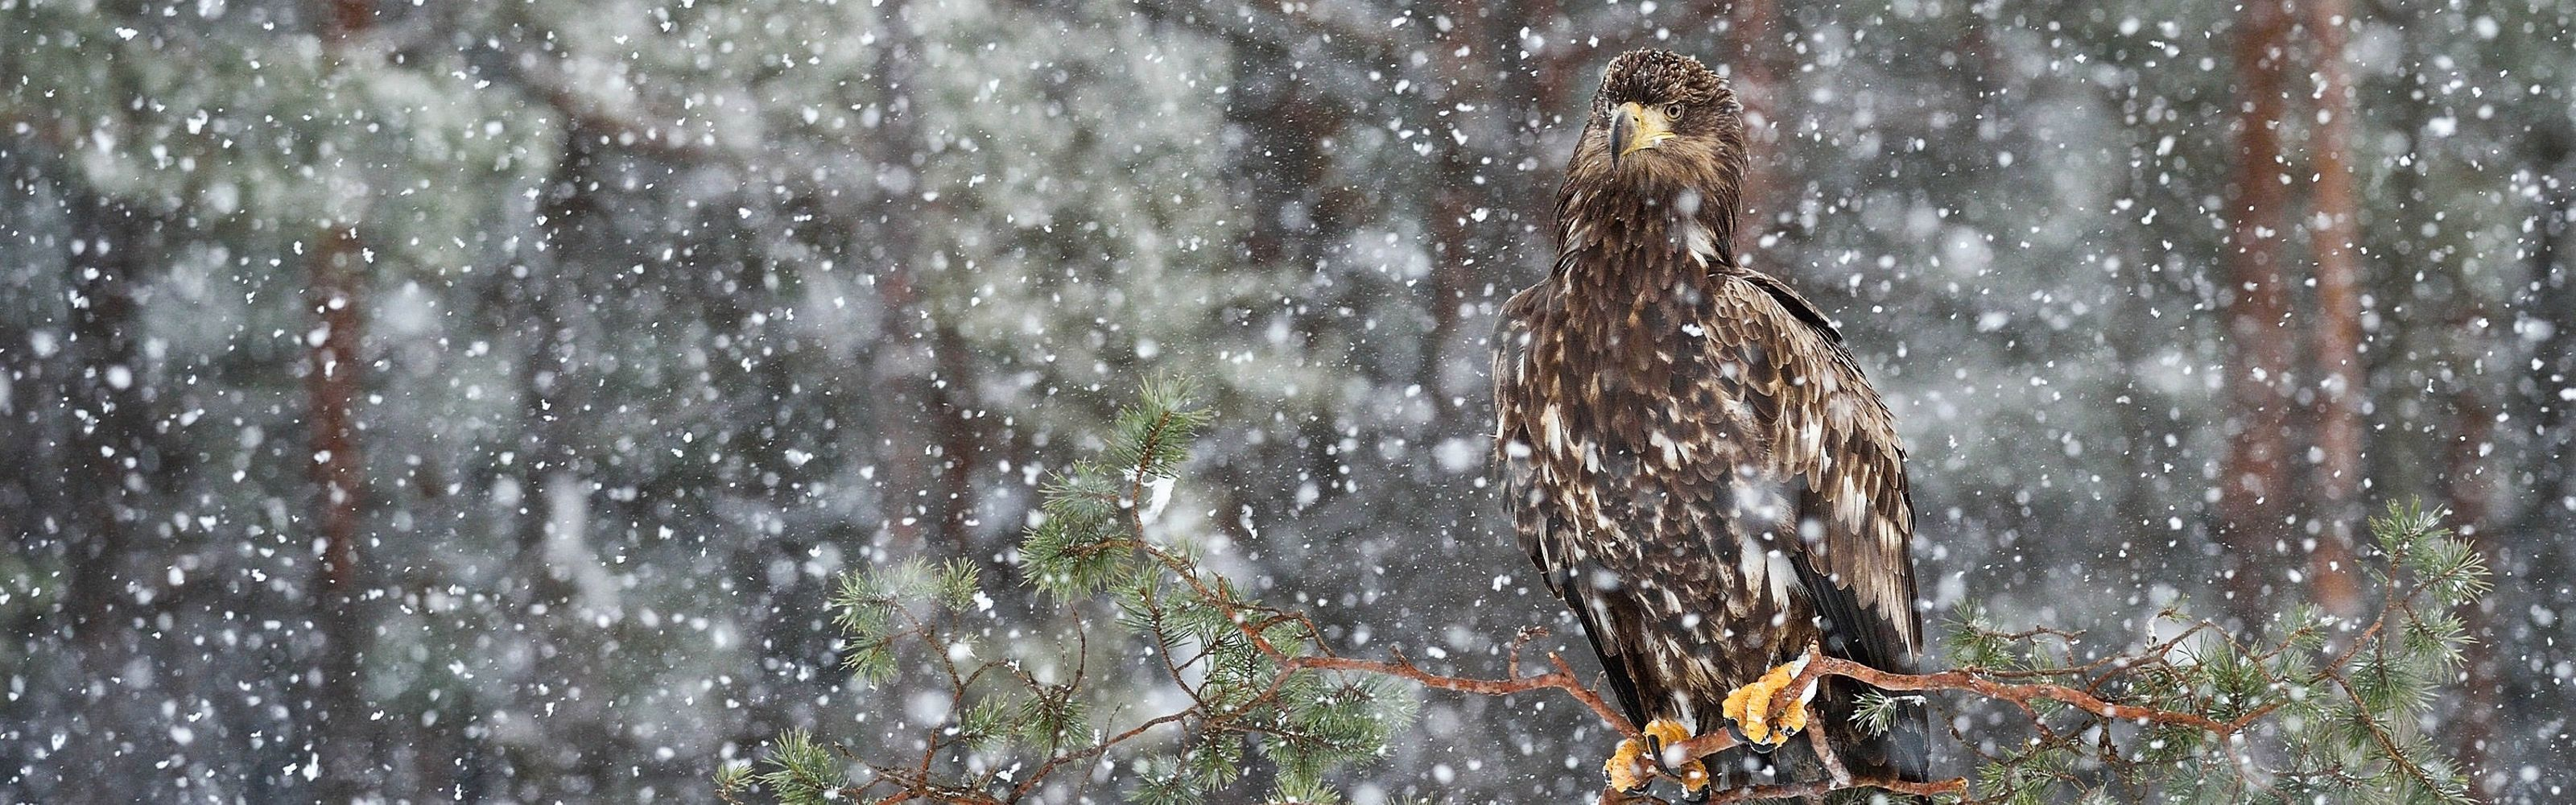 A white-tailed eagle during a snowstorm in Hiiumaa Island, Estonia. This photo was entered into The Nature Conservancy's 2018 Photo Contest.